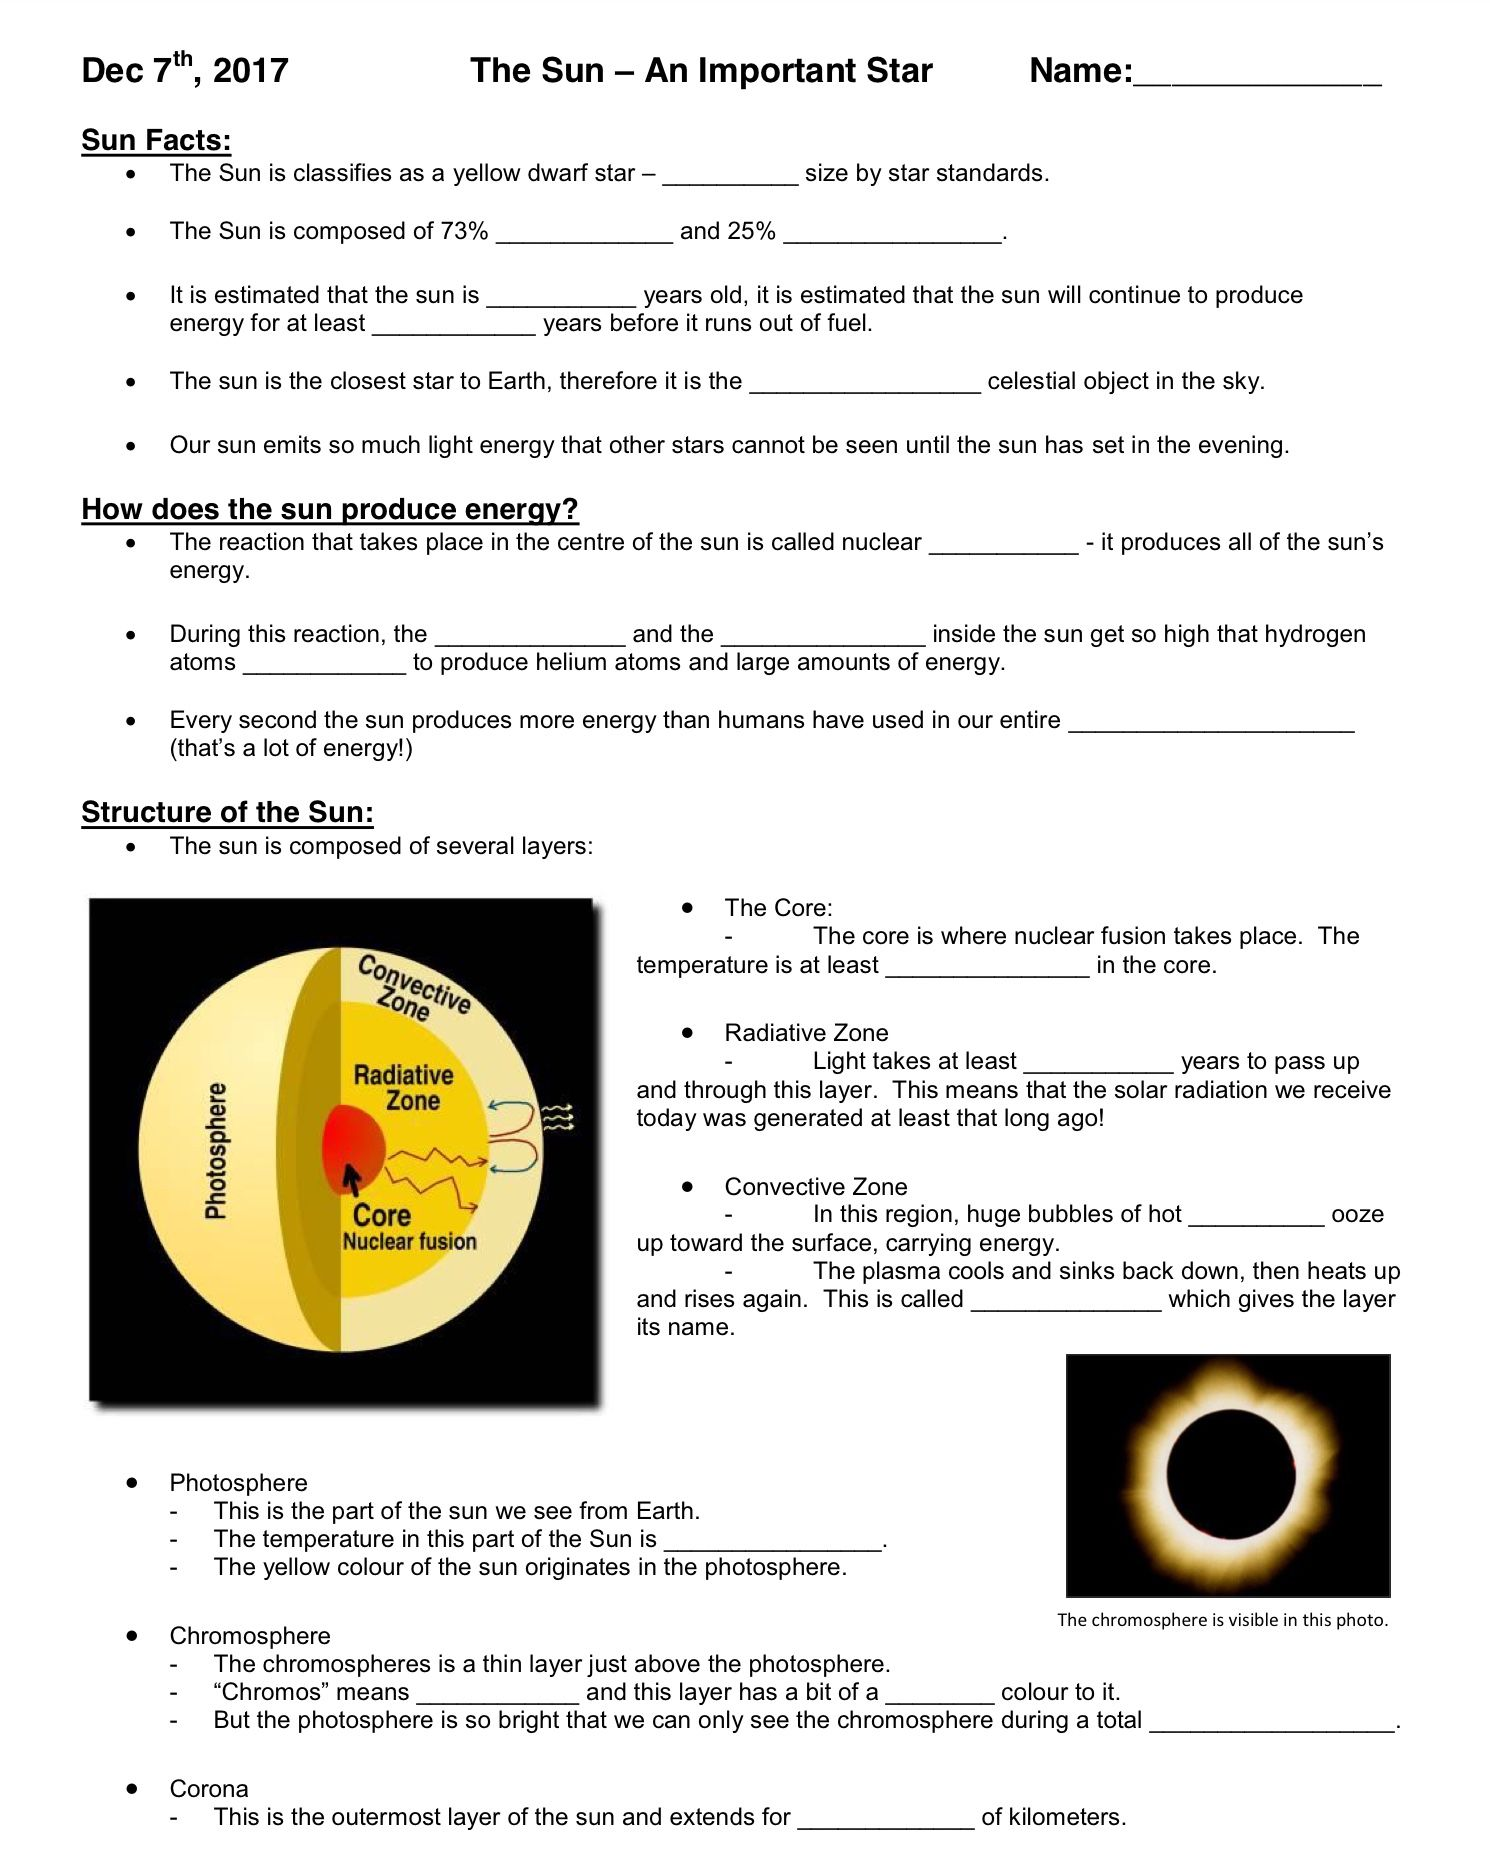 hight resolution of The Sun - An Important Star - Worksheet - December 7